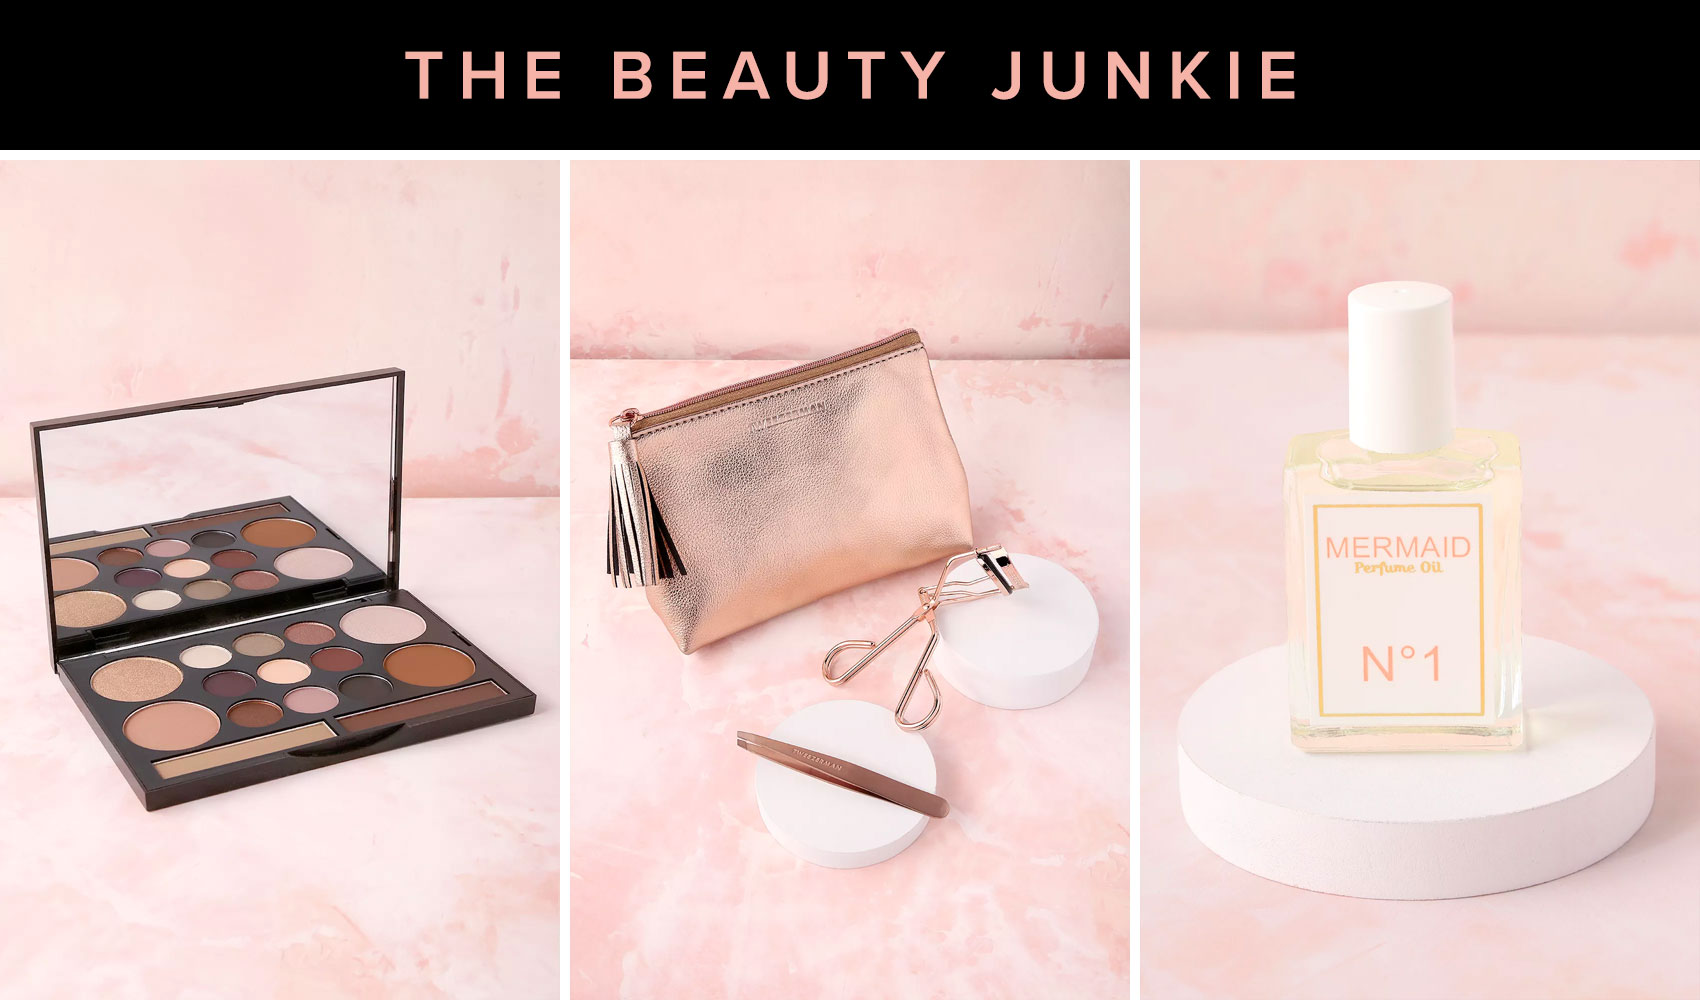 The Beauty Junkie